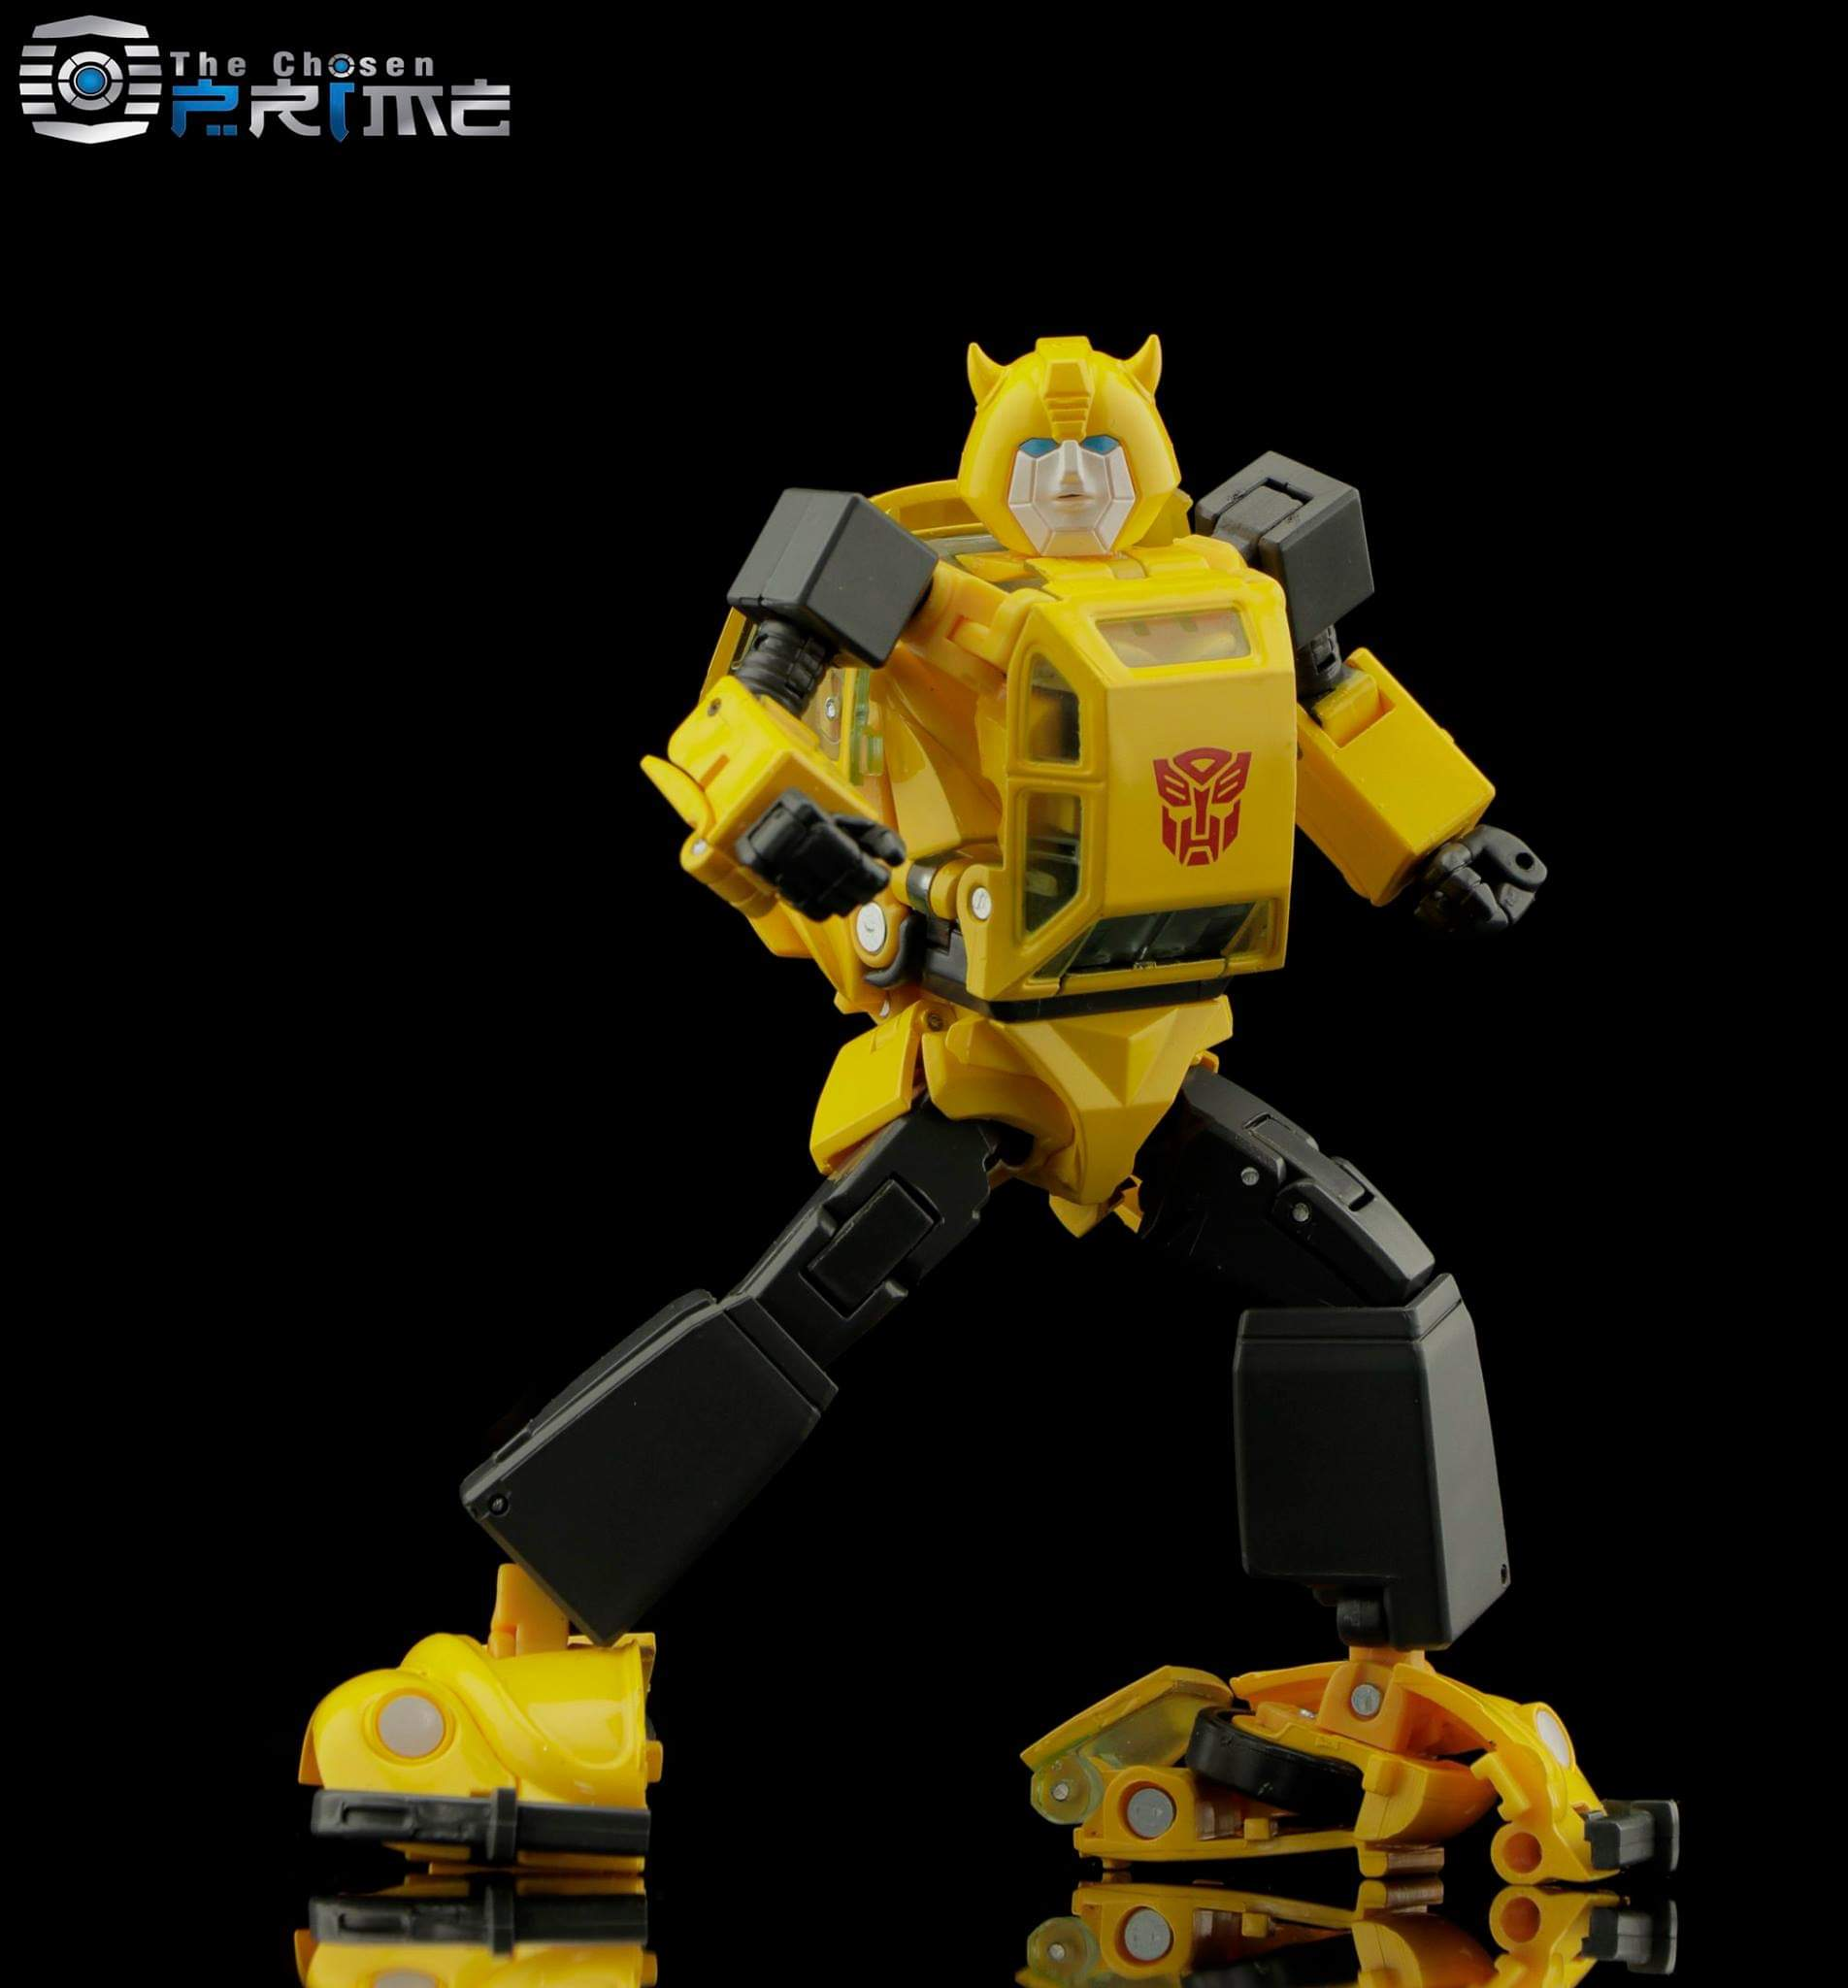 [Masterpiece] MP-45 Bumblebee/Bourdon v2.0 - Page 2 GVx4jd0J_o